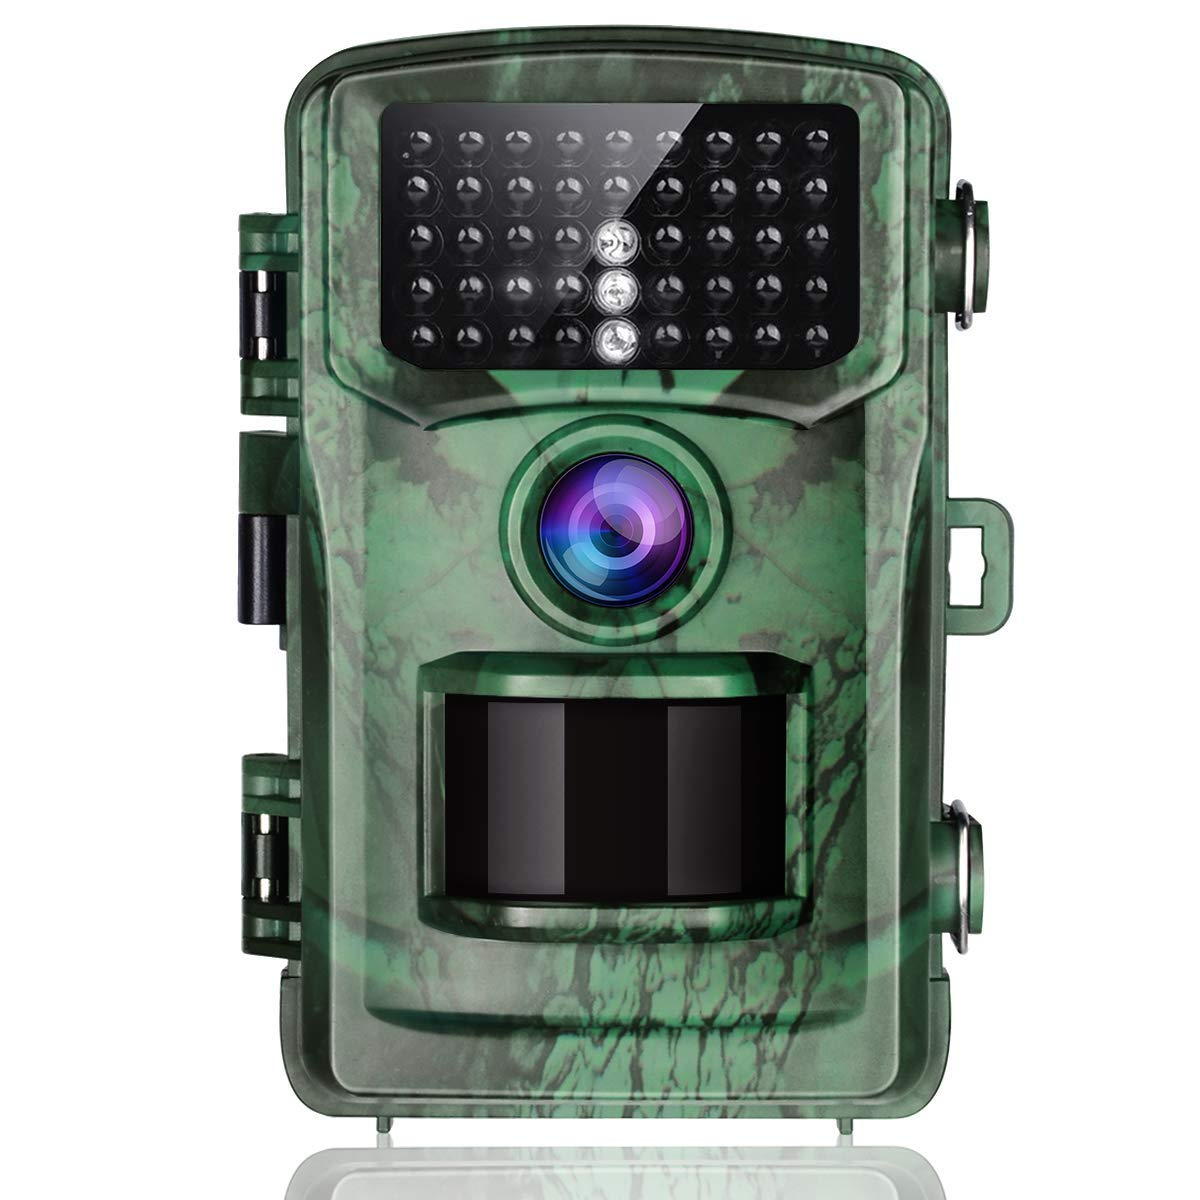 TOGUARD Trail Camera 14MP 1080P Game Hunting Cameras with Night Vision Waterproof 2.4 LCD IR LEDs Night Vision Deer Cam Design for Wildlife Monitoring and Home Security